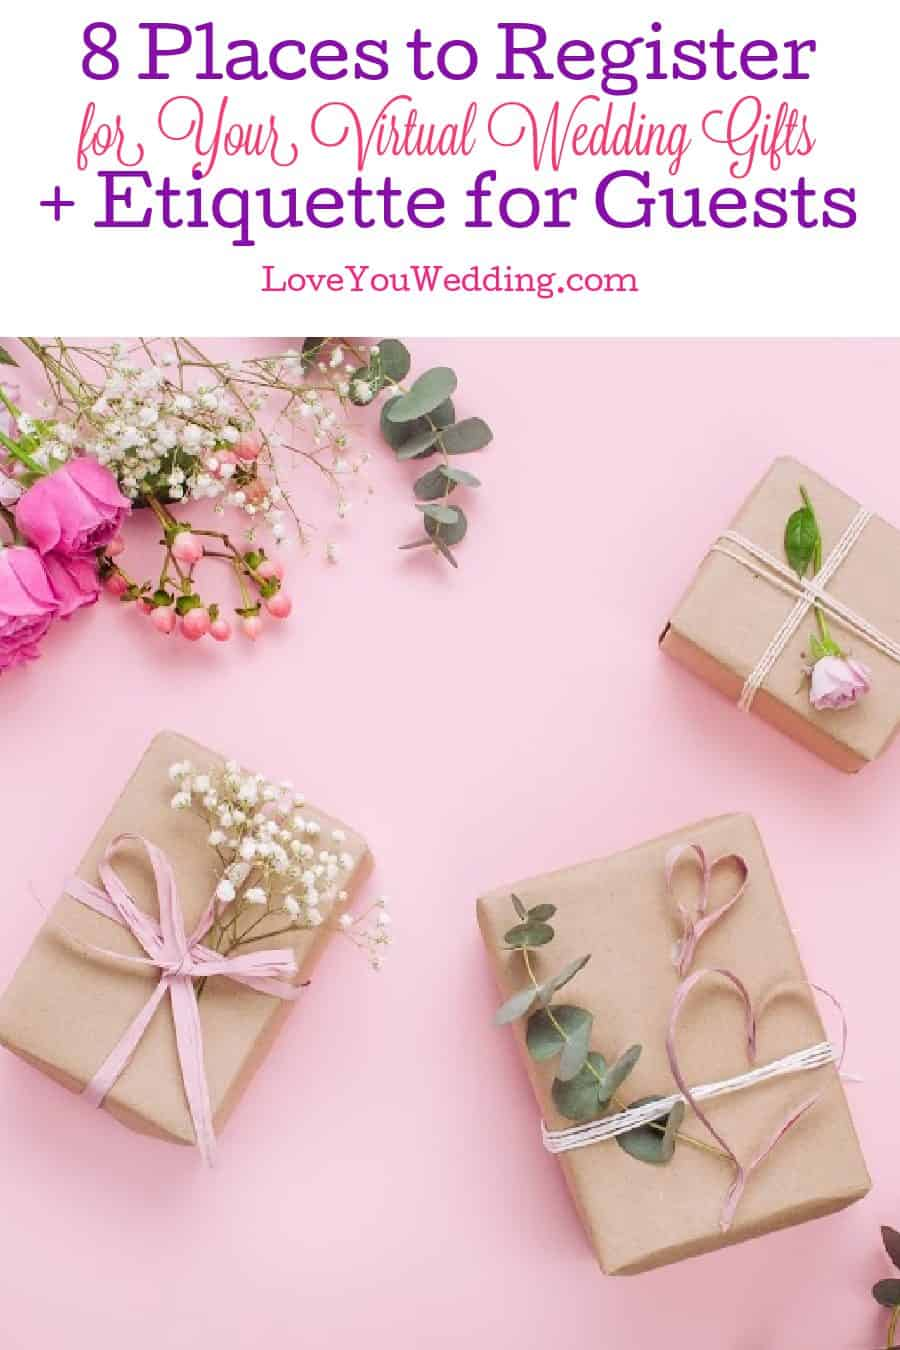 Check out 8 amazing virtual wedding registry ideas for couples, plus our guide to gifting etiquette for guests of a Zoom ceremony!